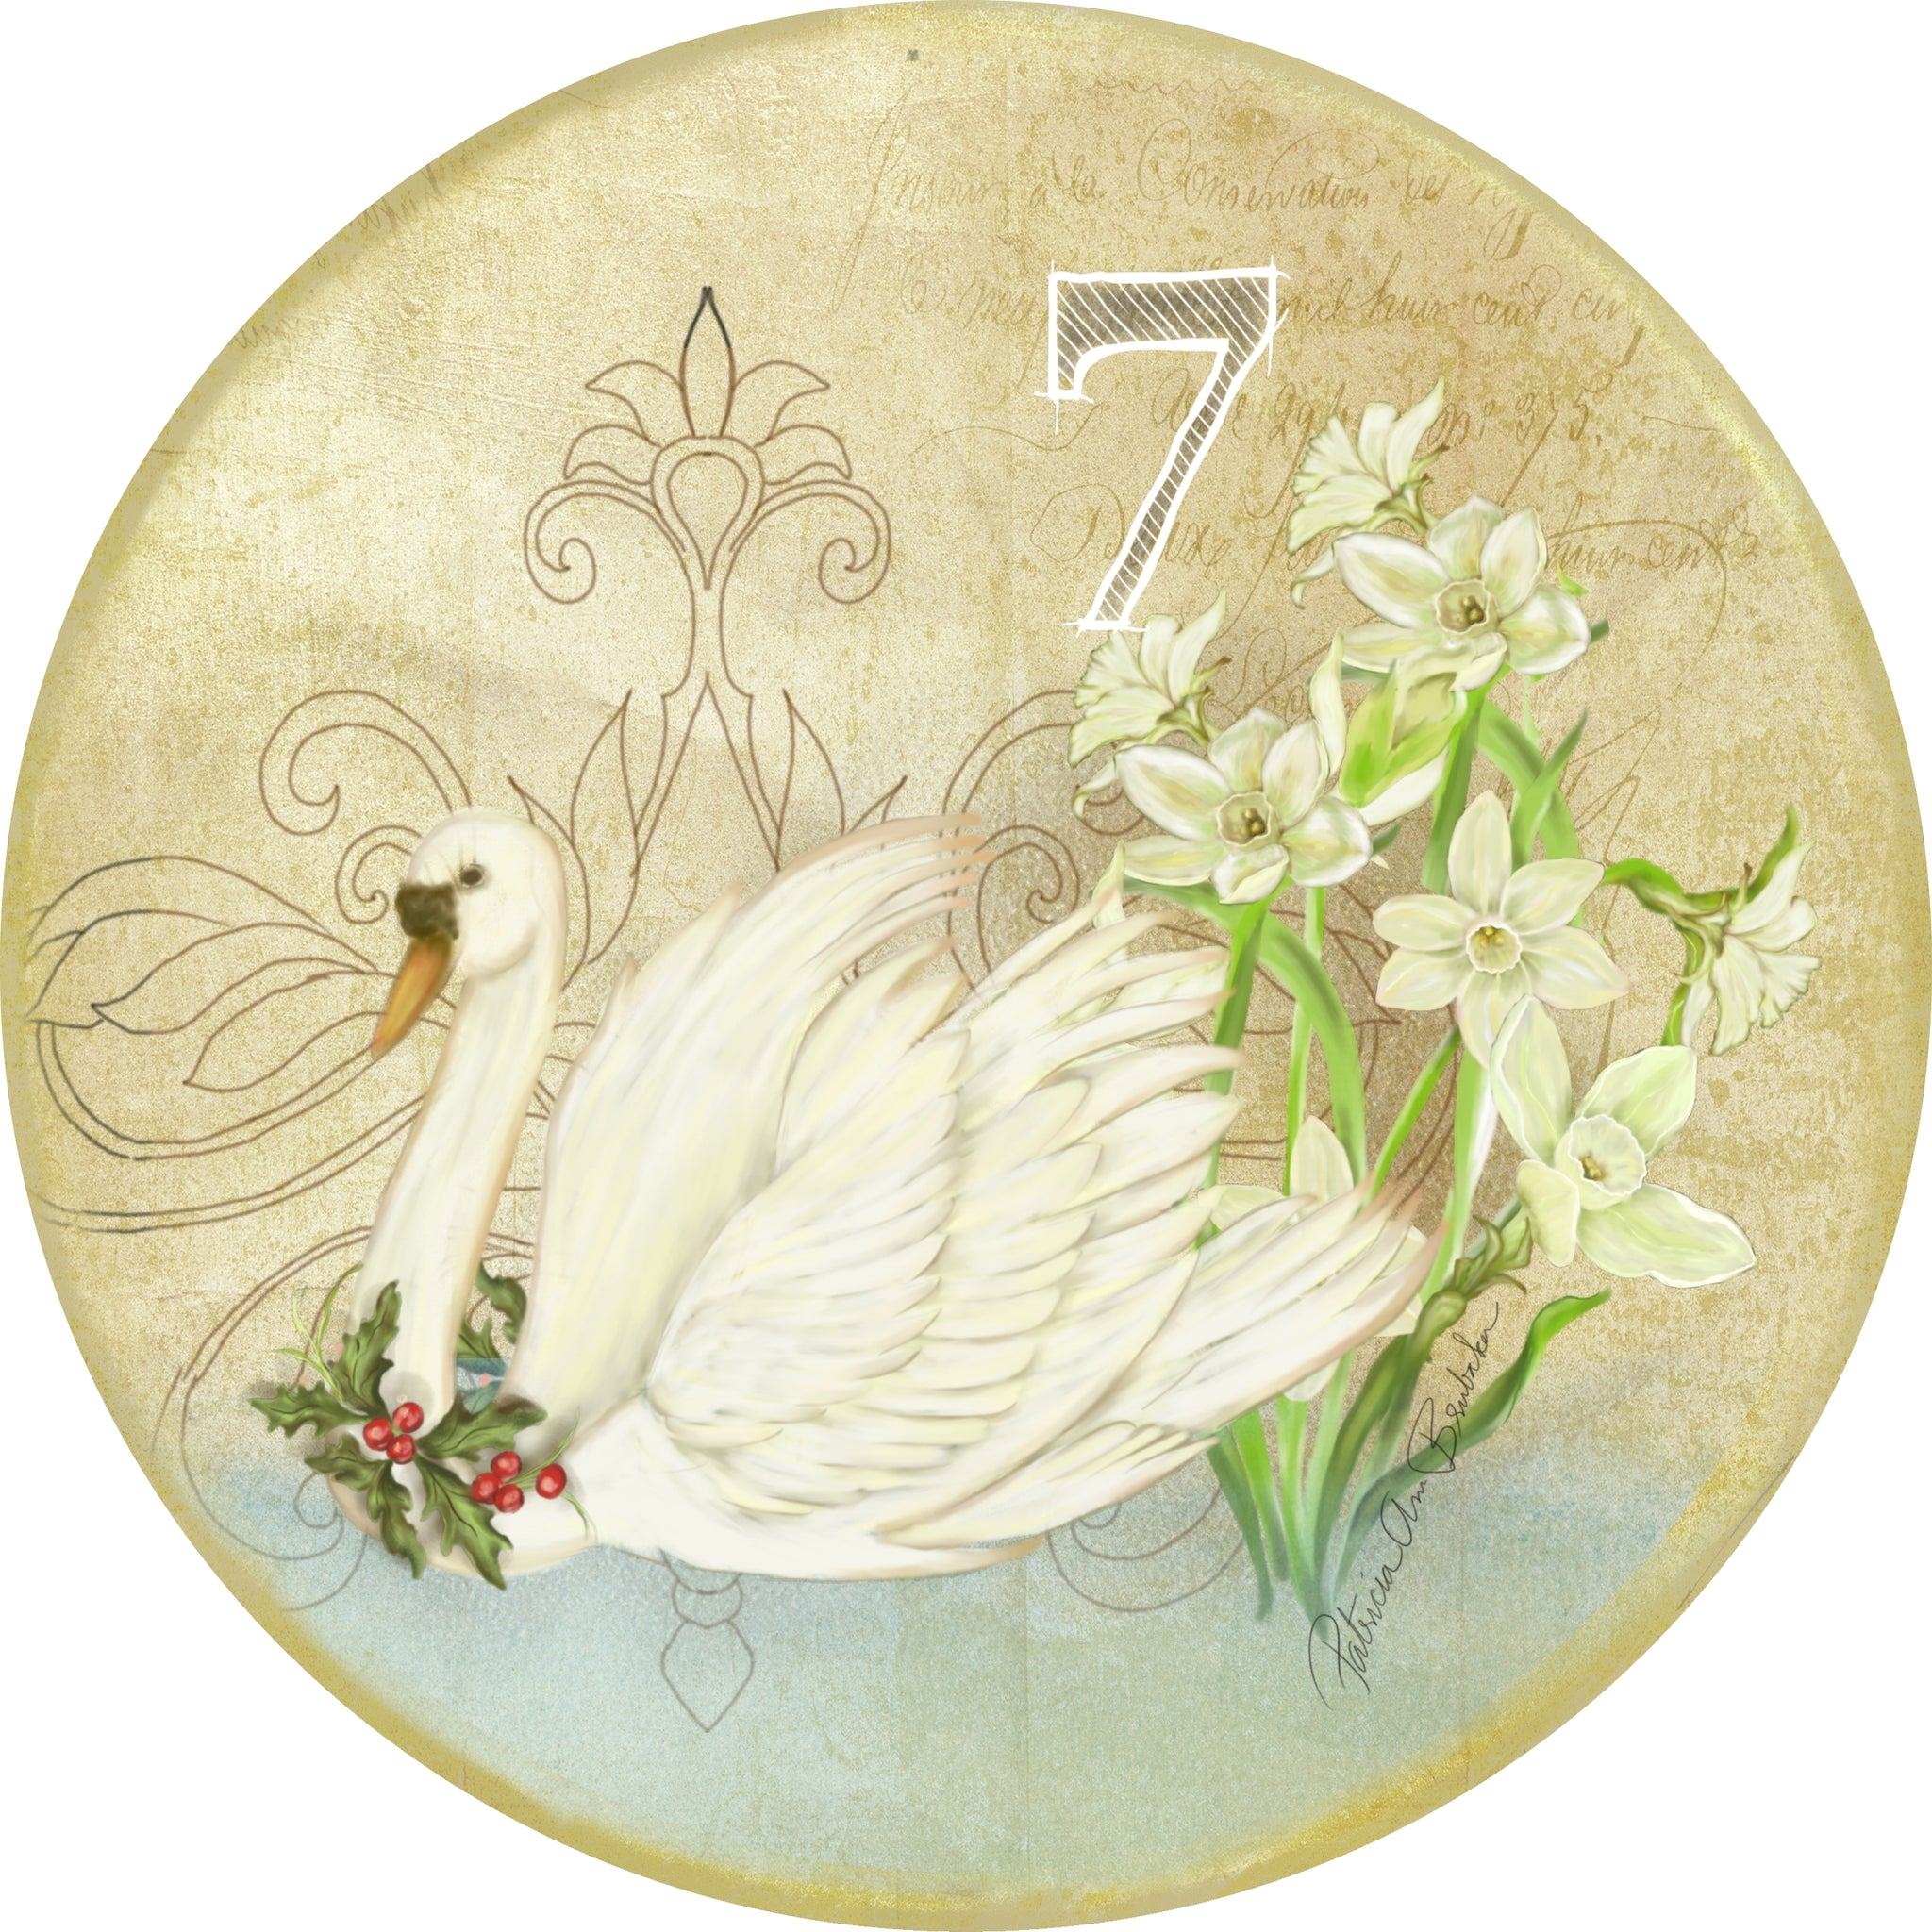 Twelve Days - Swans Swimming